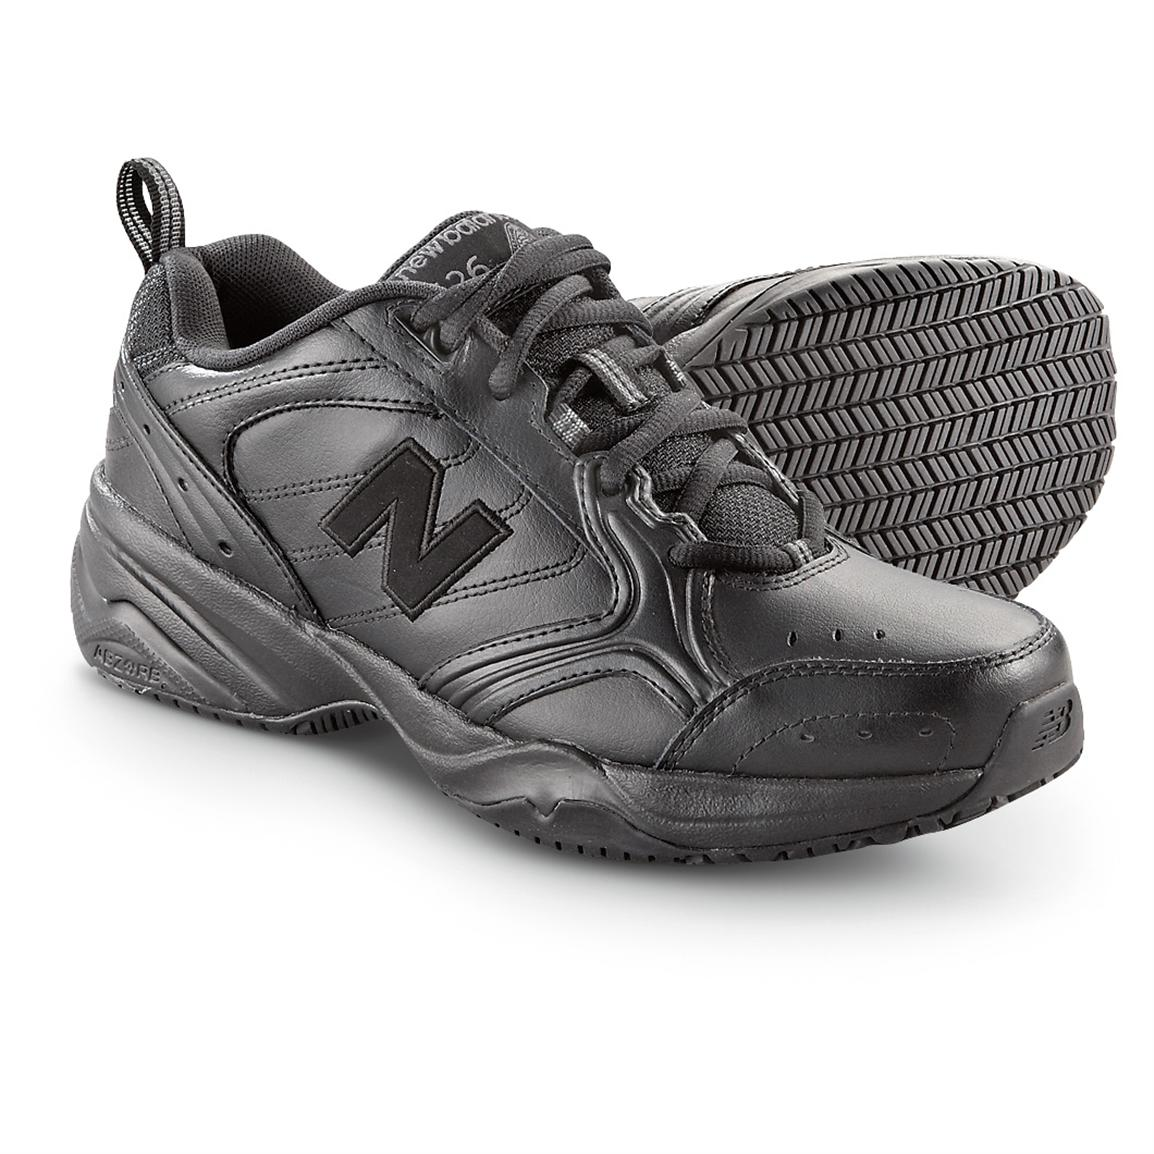 New Balance Men's 626SR Shoes, Black